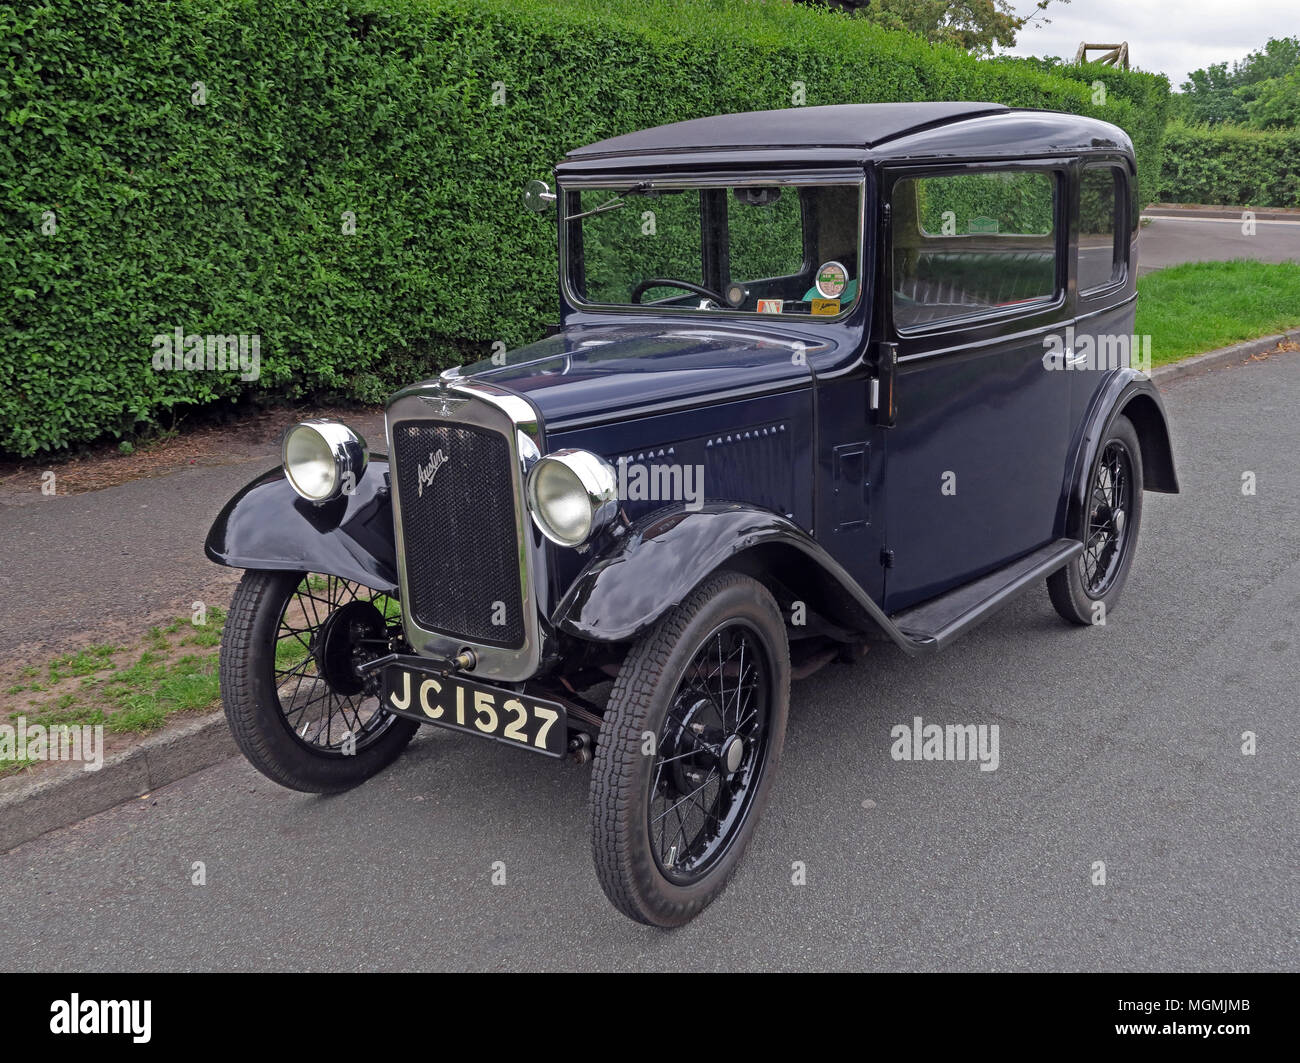 Austin Seven Motor Car JC1527 - Stock Image